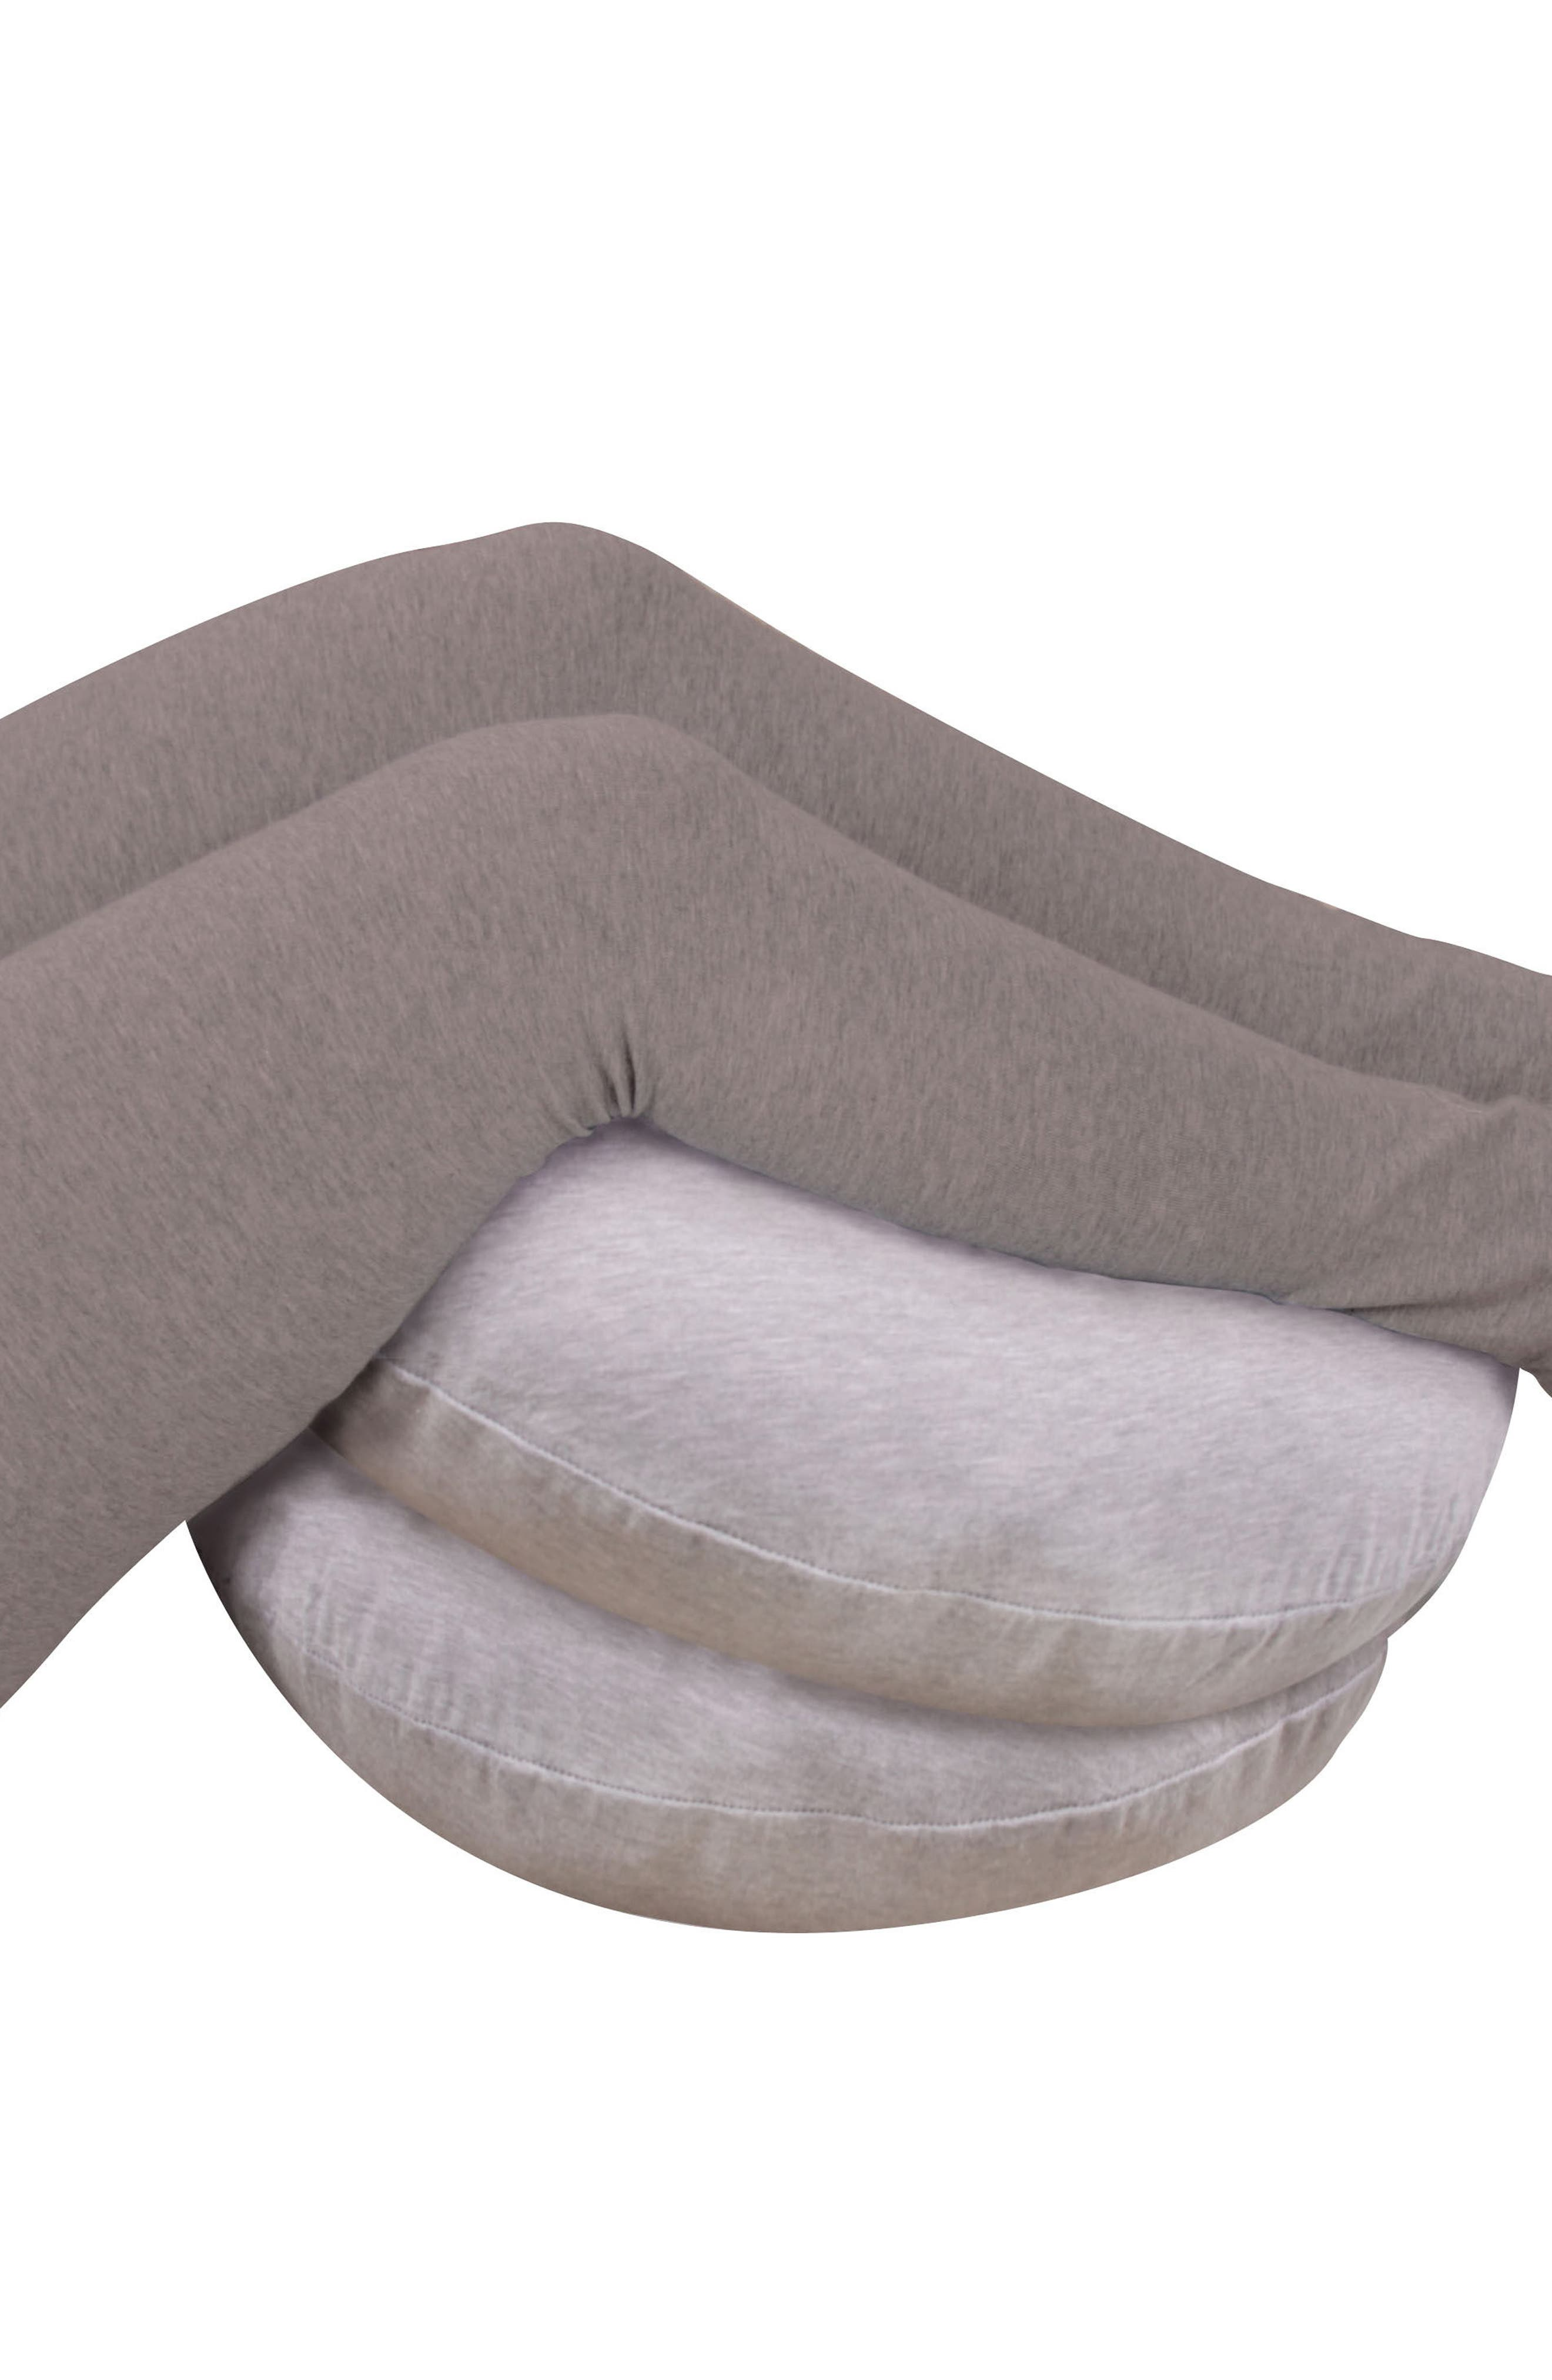 Mini Snoogle Chic Jersey Pregnancy Support Body Pillow,                             Alternate thumbnail 4, color,                             Heather Gray